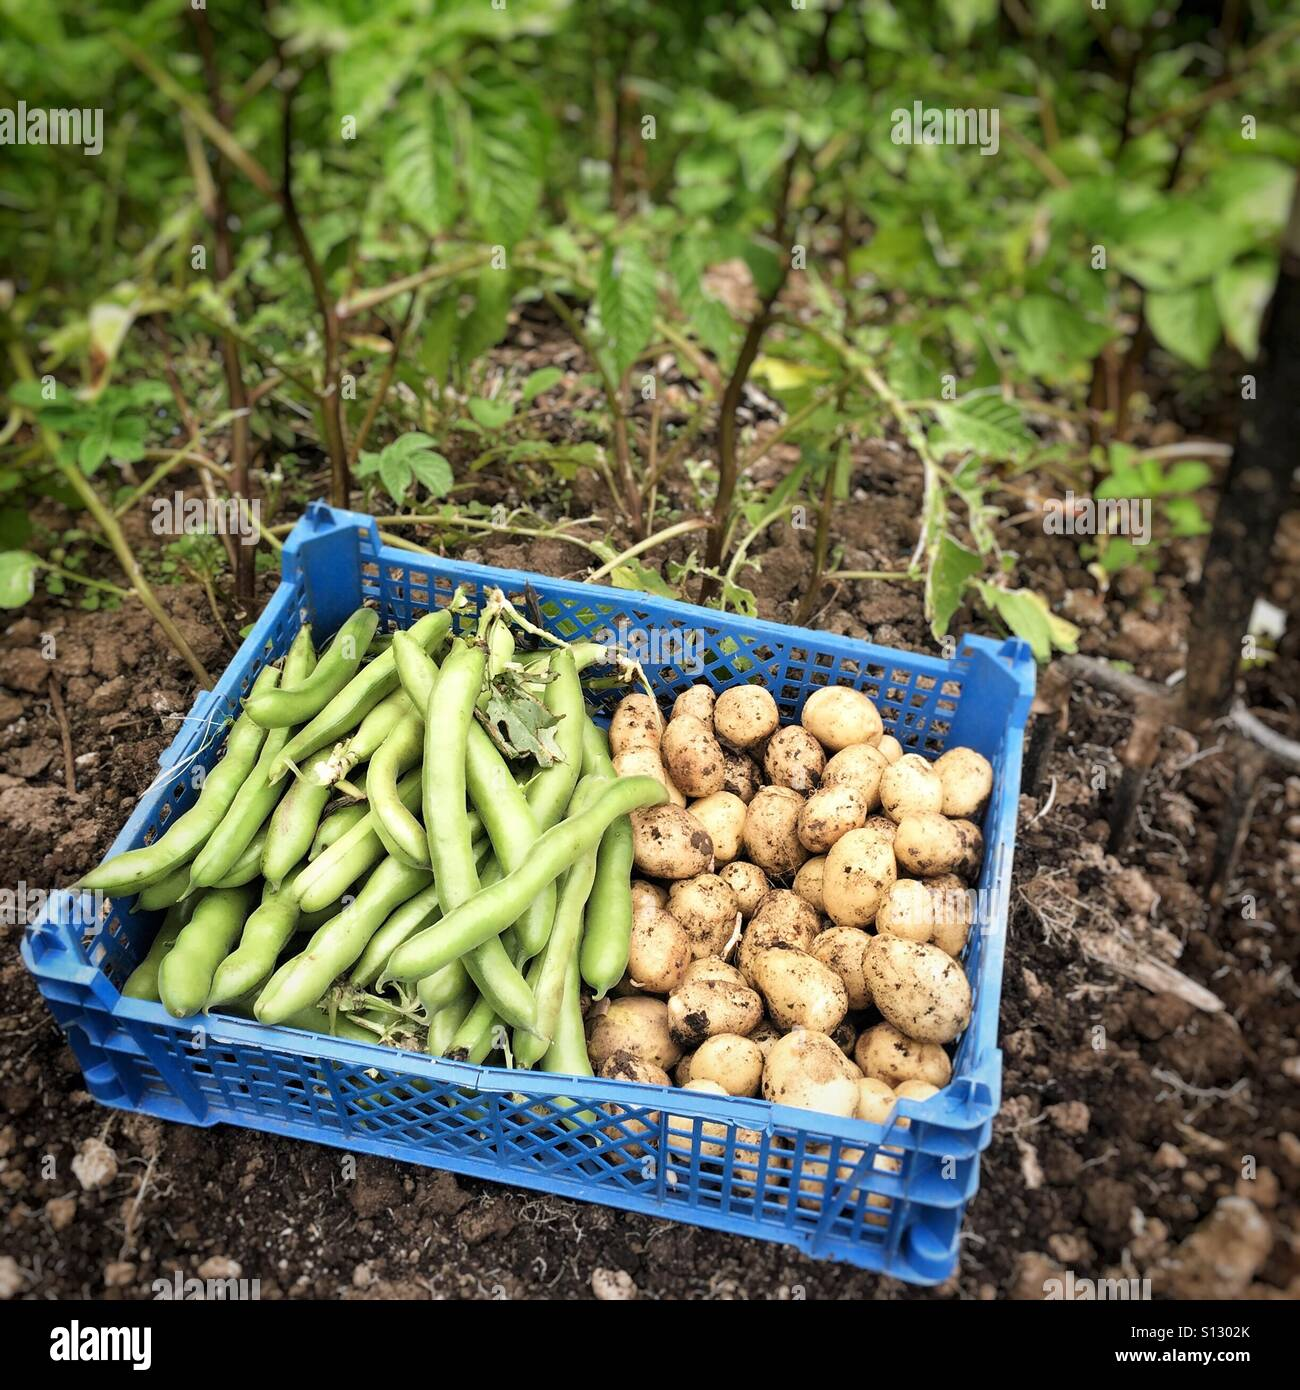 Broad beans and potatoes harvested on allotment Stock Photo